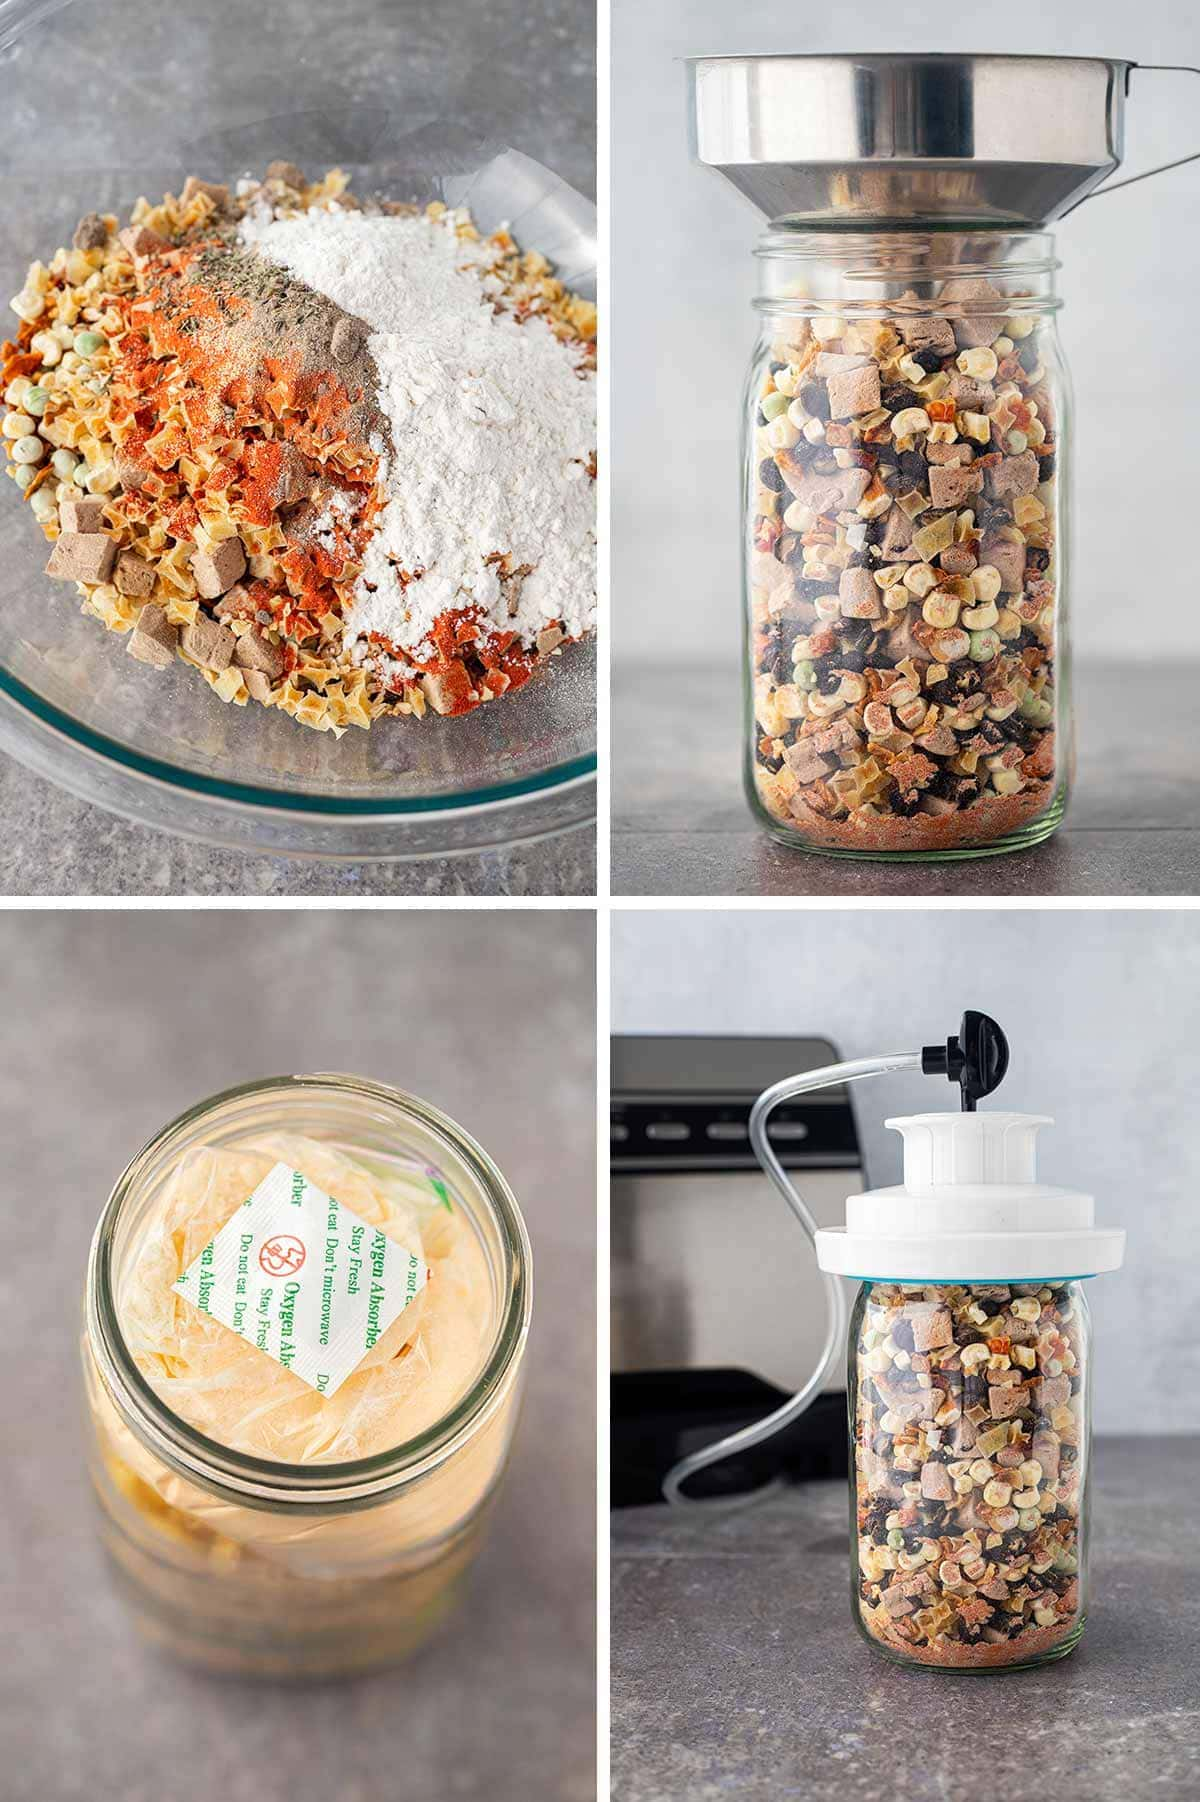 Collage of four photos showing the steps to putting together the Beef And Bean Stew Meal in a Jar recipe.